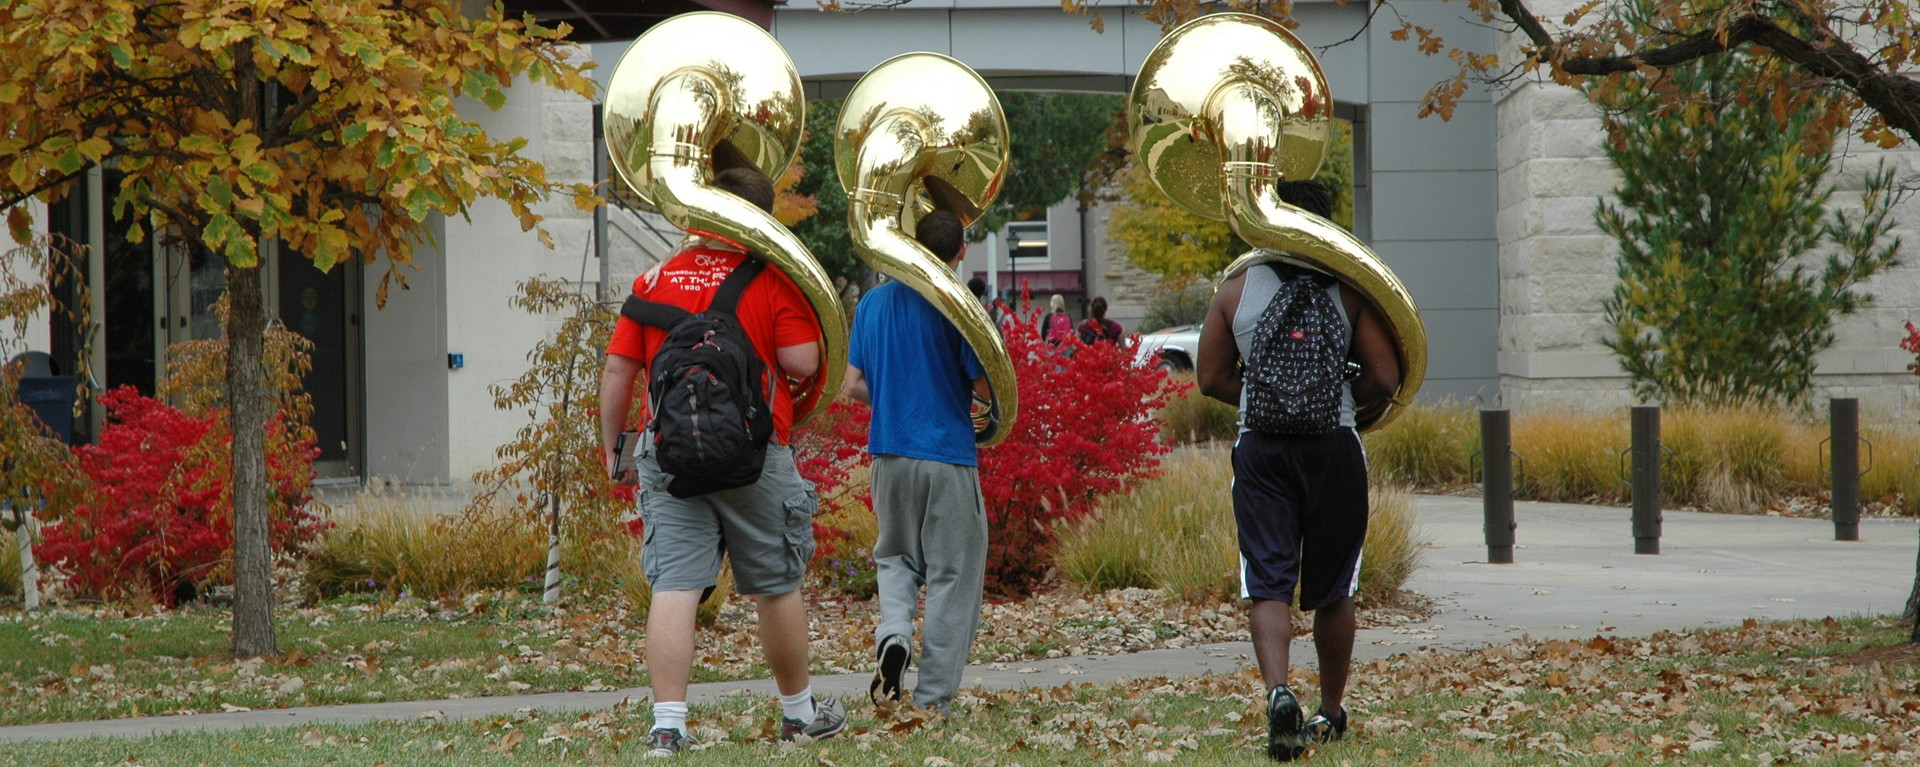 Students Walking with Tubas